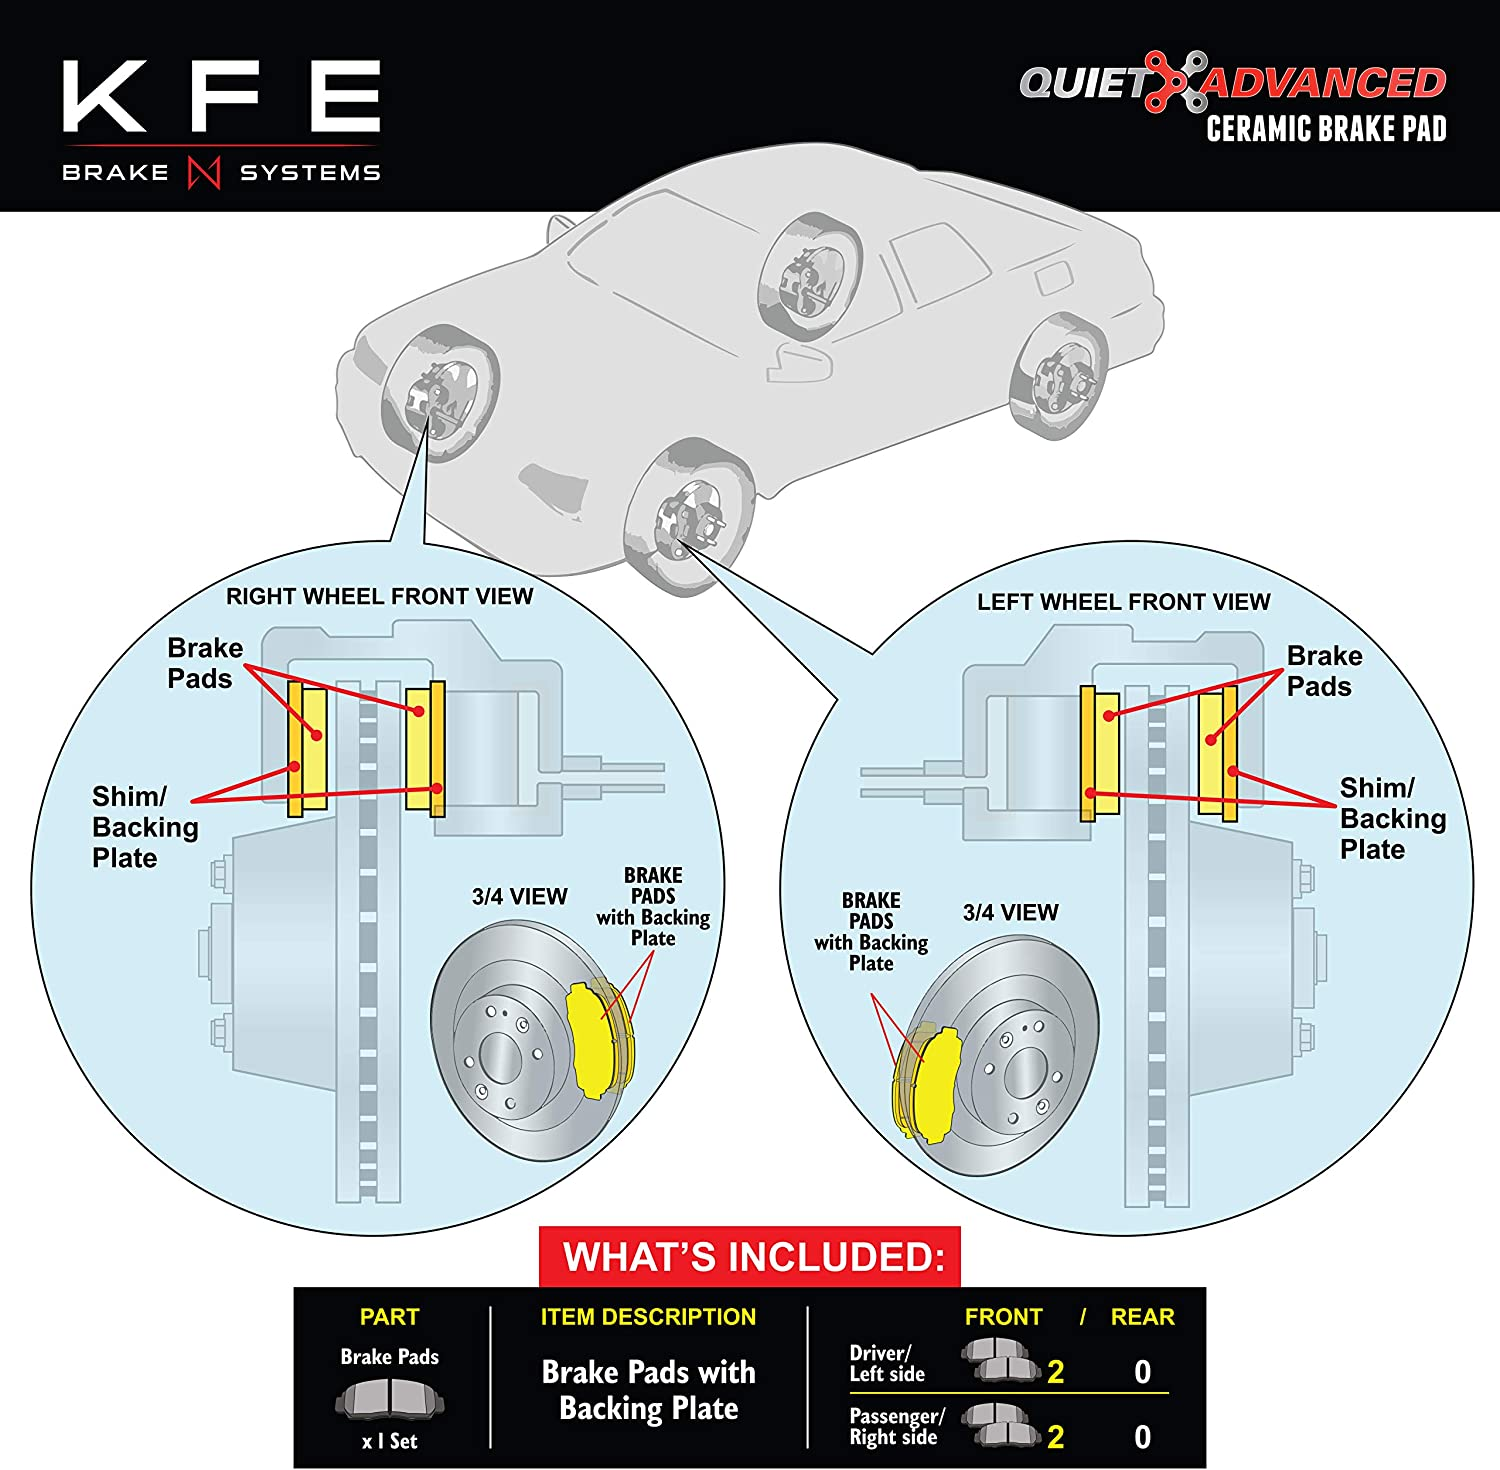 Sentra; Infiniti G20 Maxima I30; Suzuki SX4 KFE KFE653-104 Ultra Quiet Advanced Premium Ceramic Brake Pad FRONT Set Compatible With: Nissan Altima